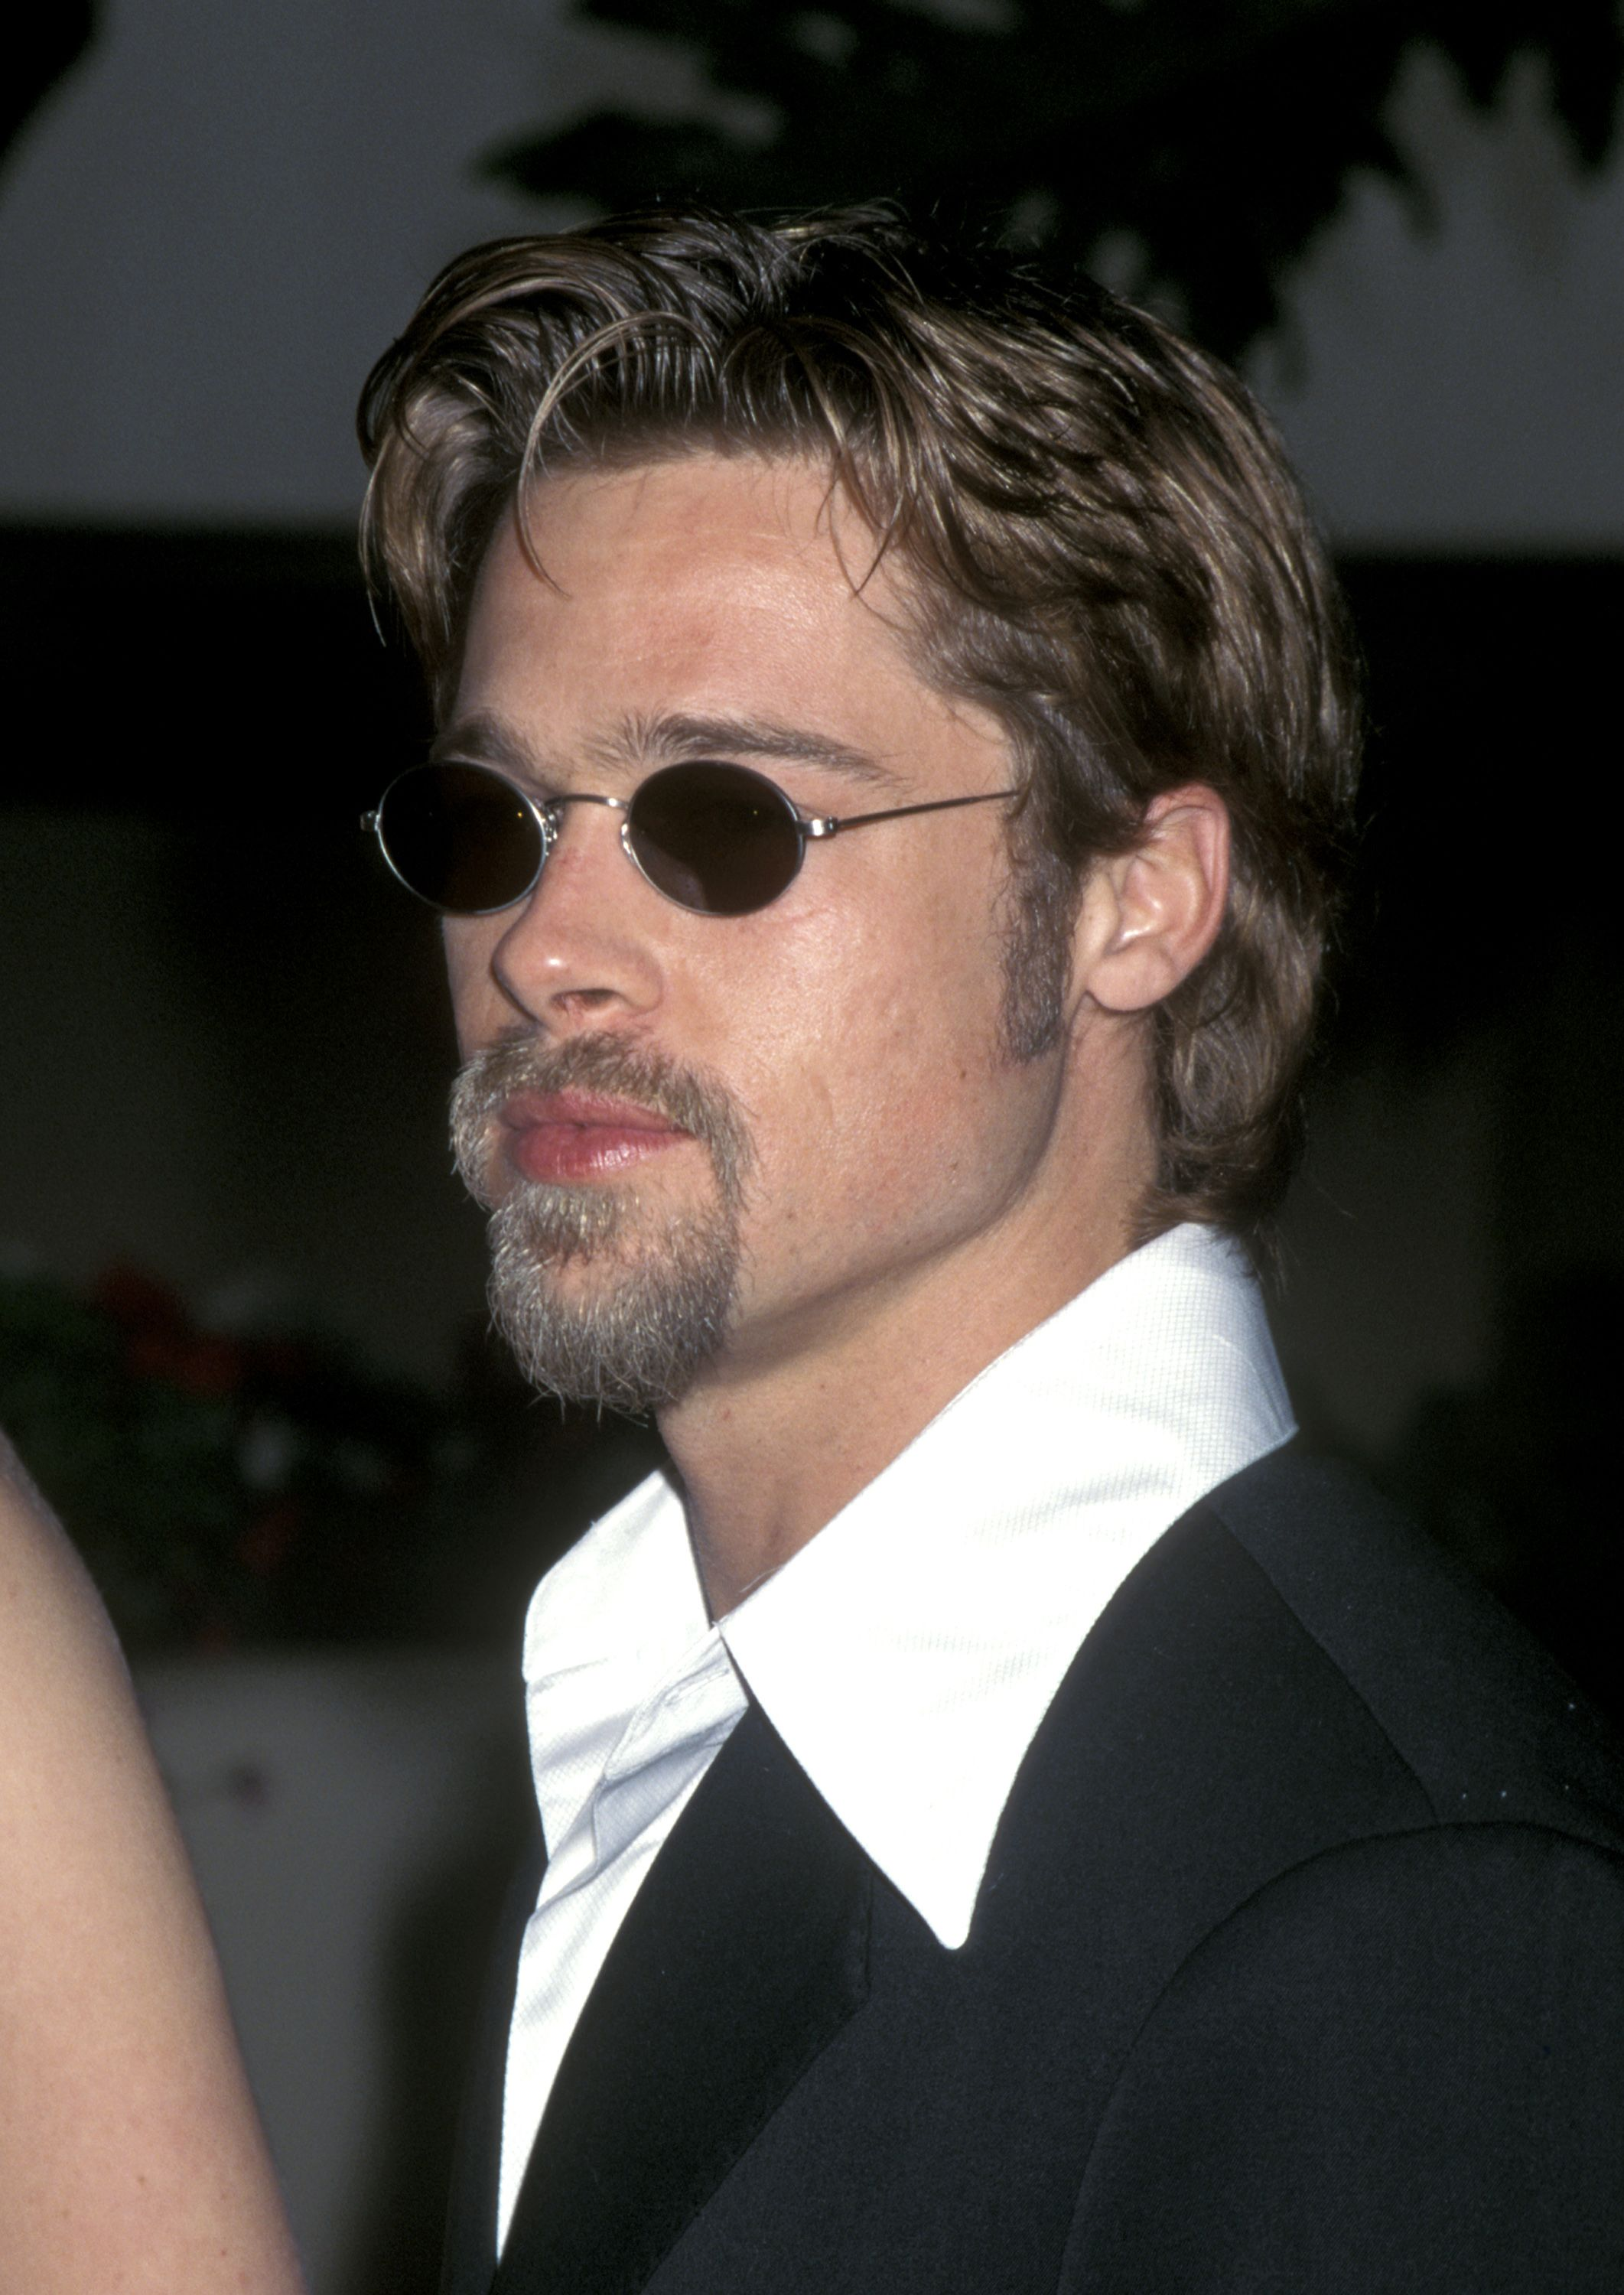 ec8eaa8fe987 Here are 32 Photos That Show Brad Pitt Has Barely Aged Over the Years